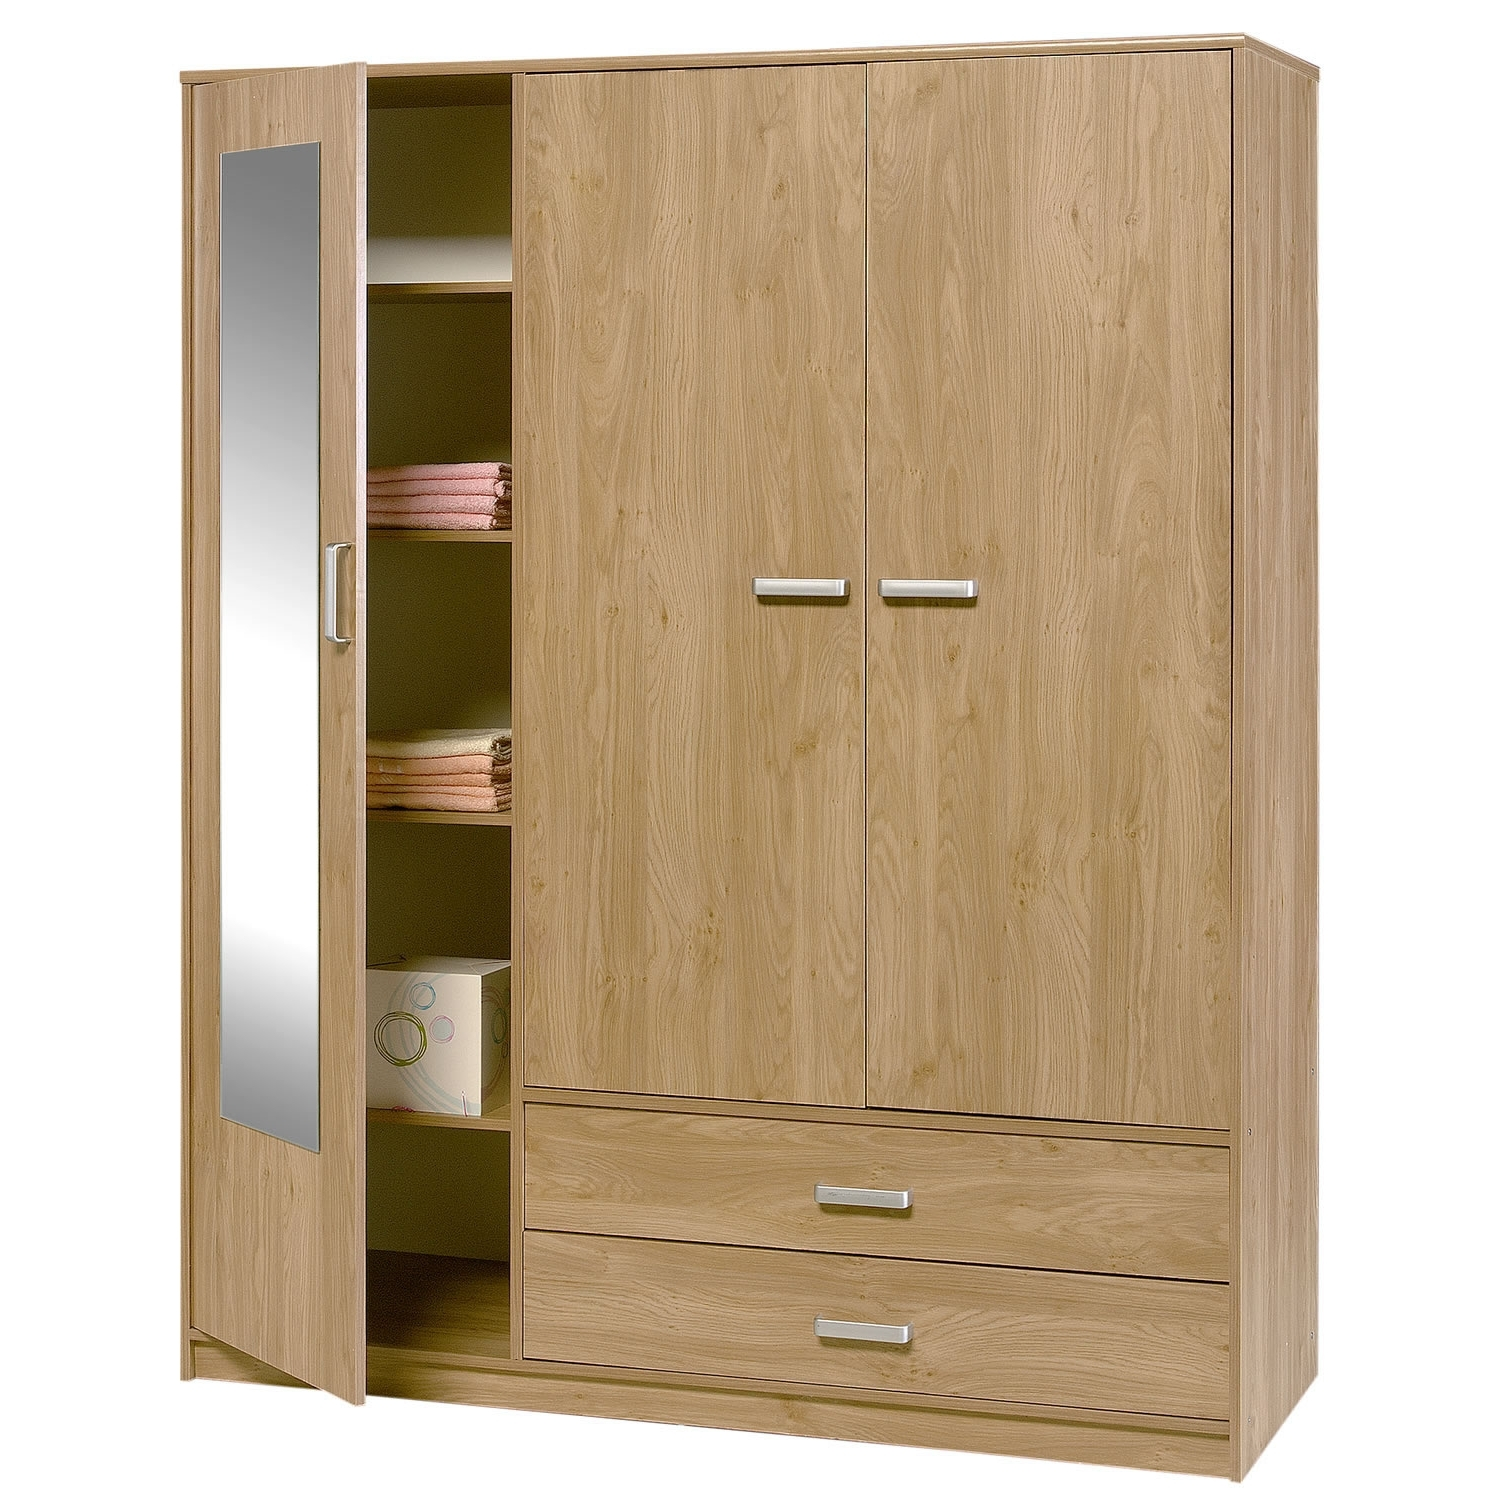 Door With Within Latest Double Rail Single Wardrobes (View 1 of 15)